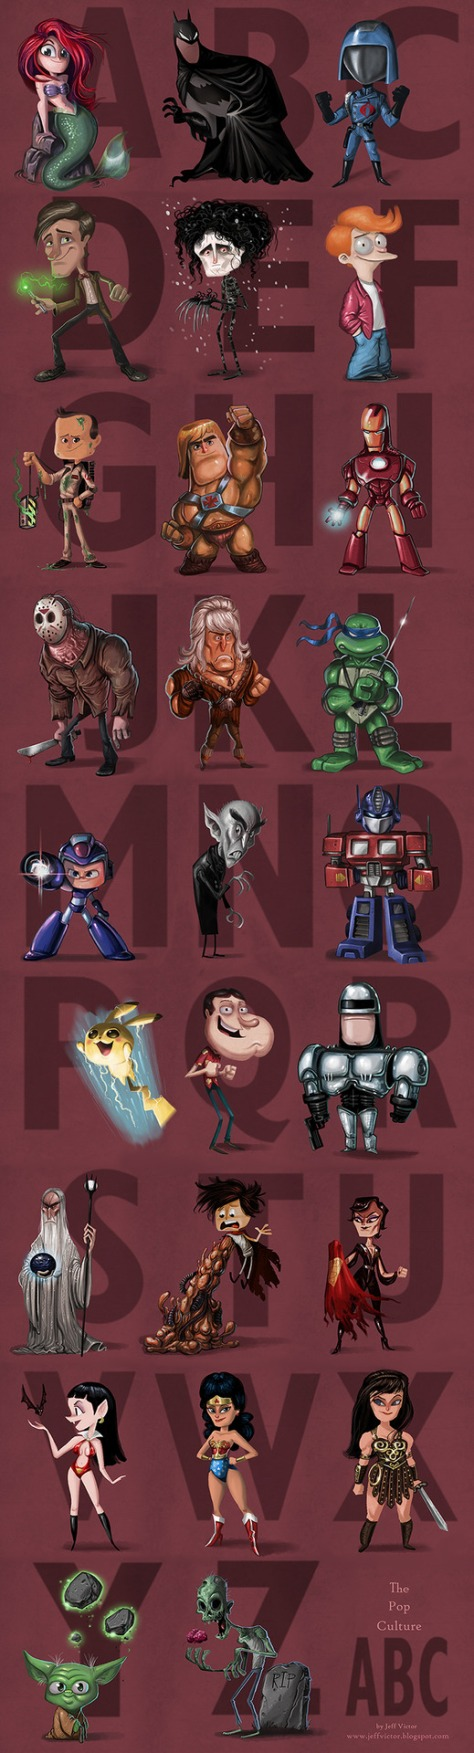 The ABCs of Pop Culture